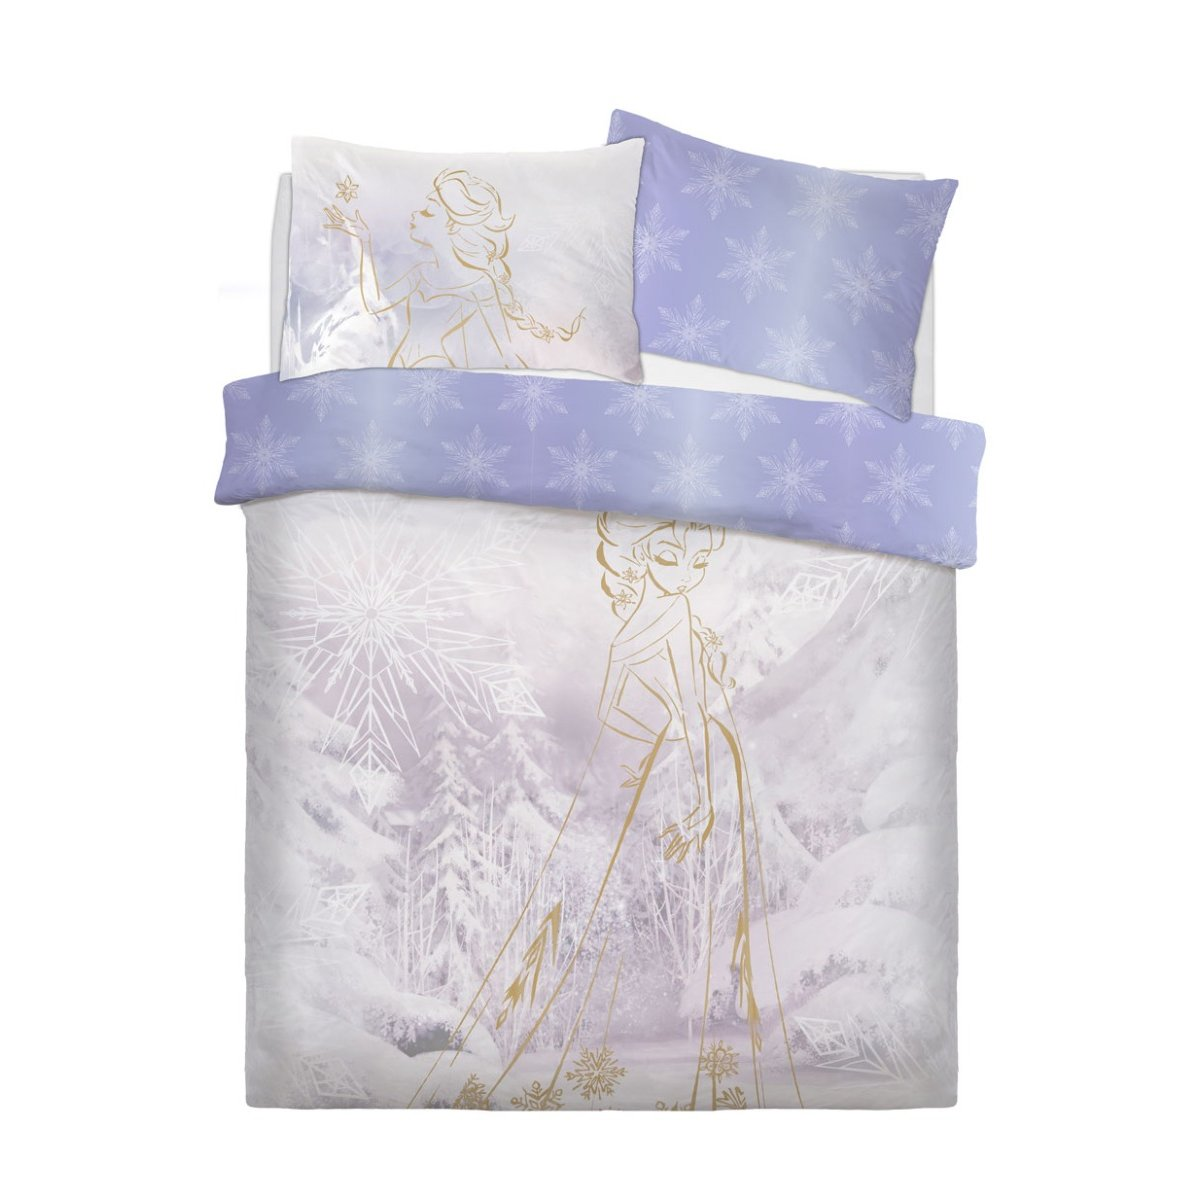 Sleepdown Official | Frozen Rose Gold Bedding Set